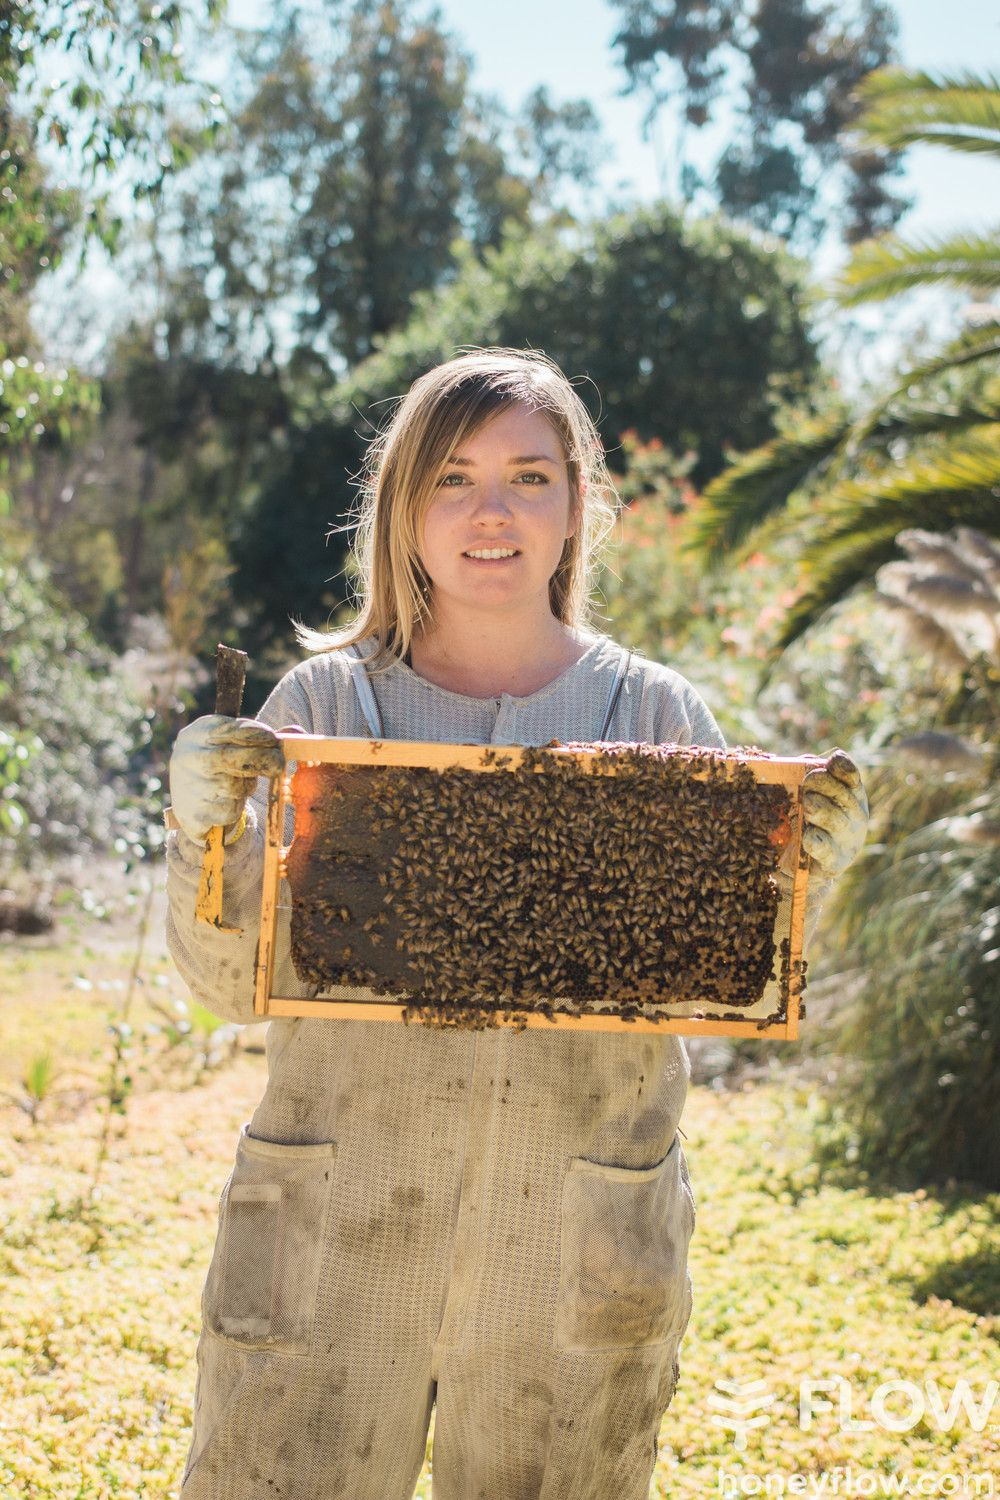 Hilary Kearney - The Founder of Girl Next Door Honey